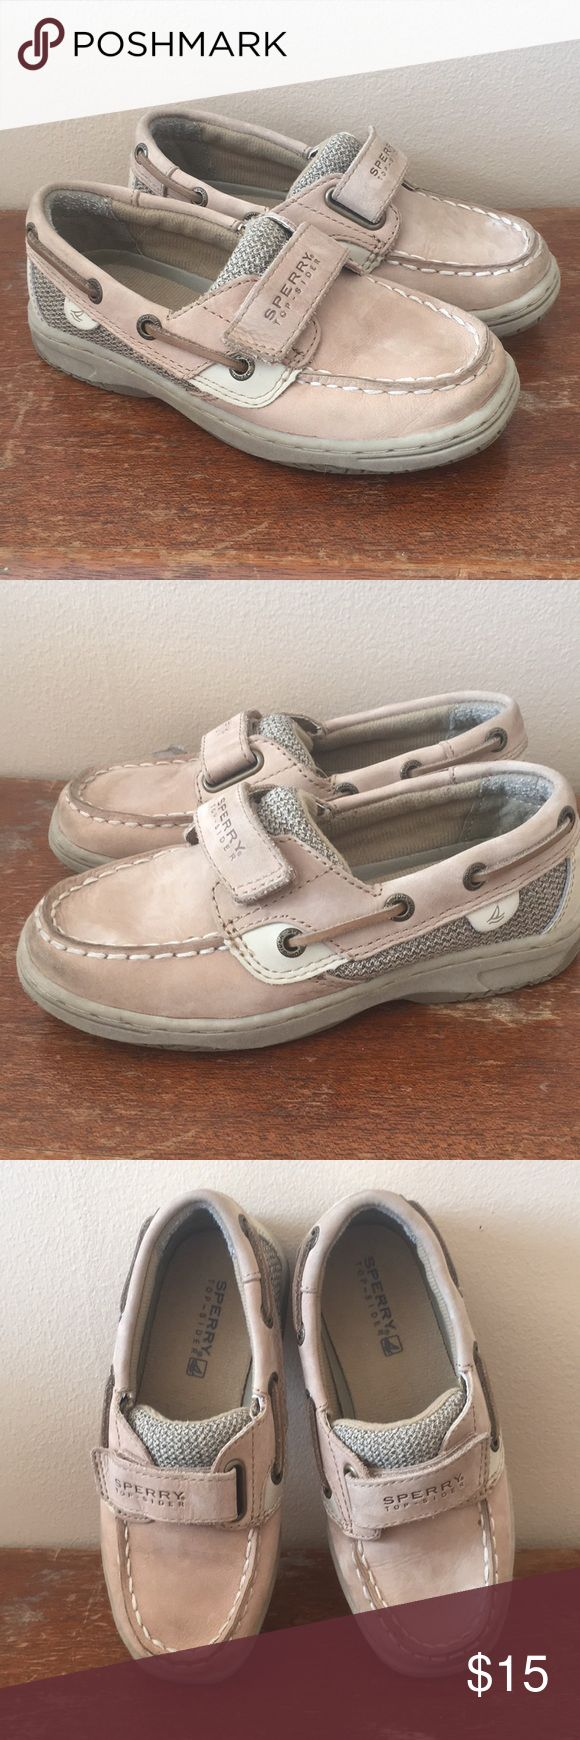 Little Boys Sperry Shoes Lovely cream little boys shoes. Perfect for everyday or dress up Sperry Top-Sider Shoes Dress Shoes